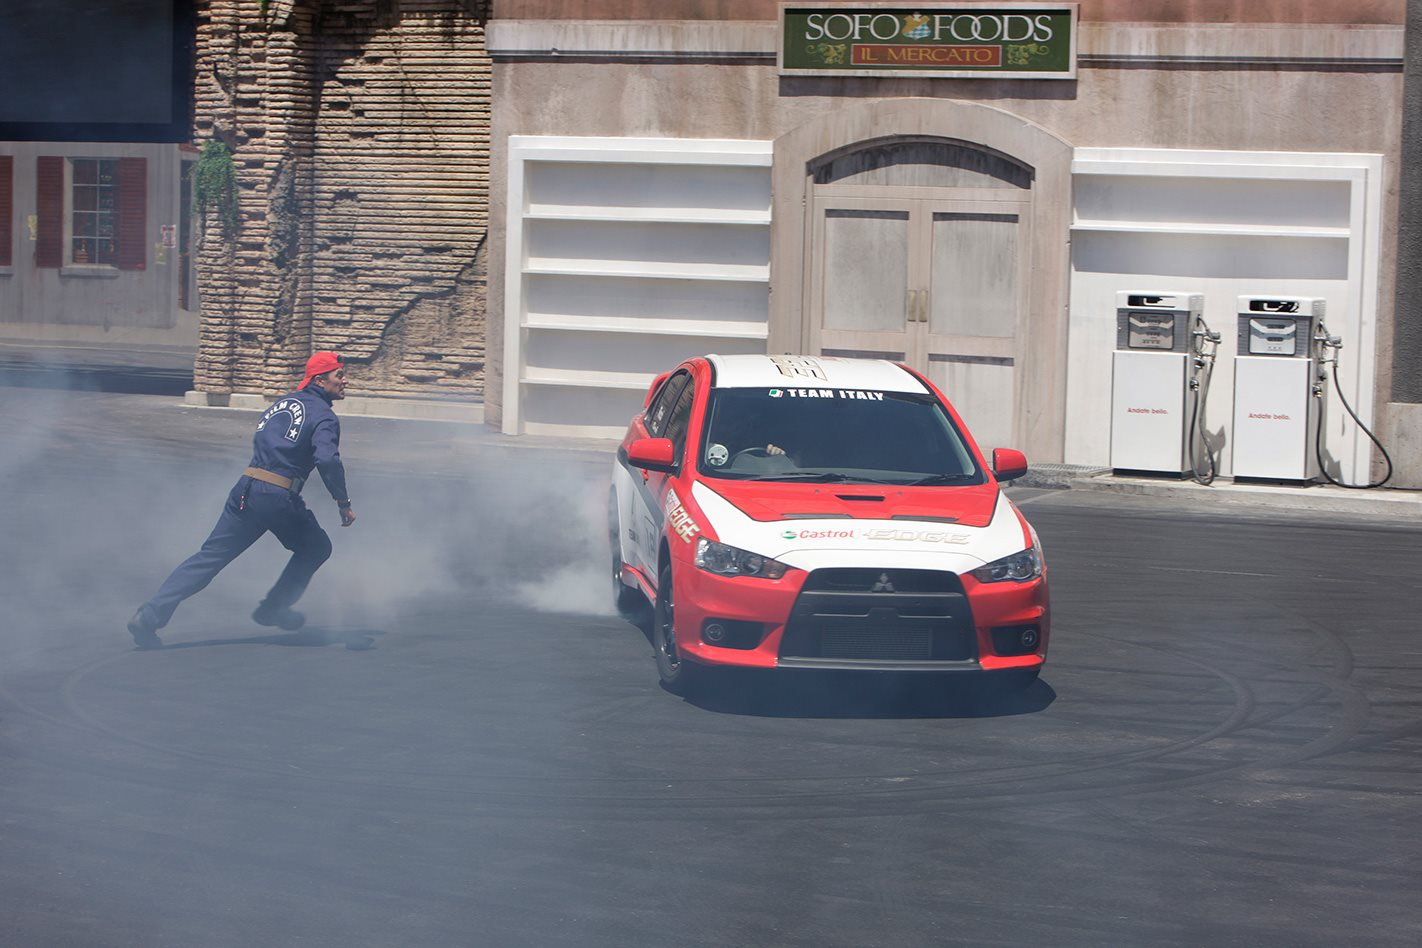 The Stunt driver's movieworld show